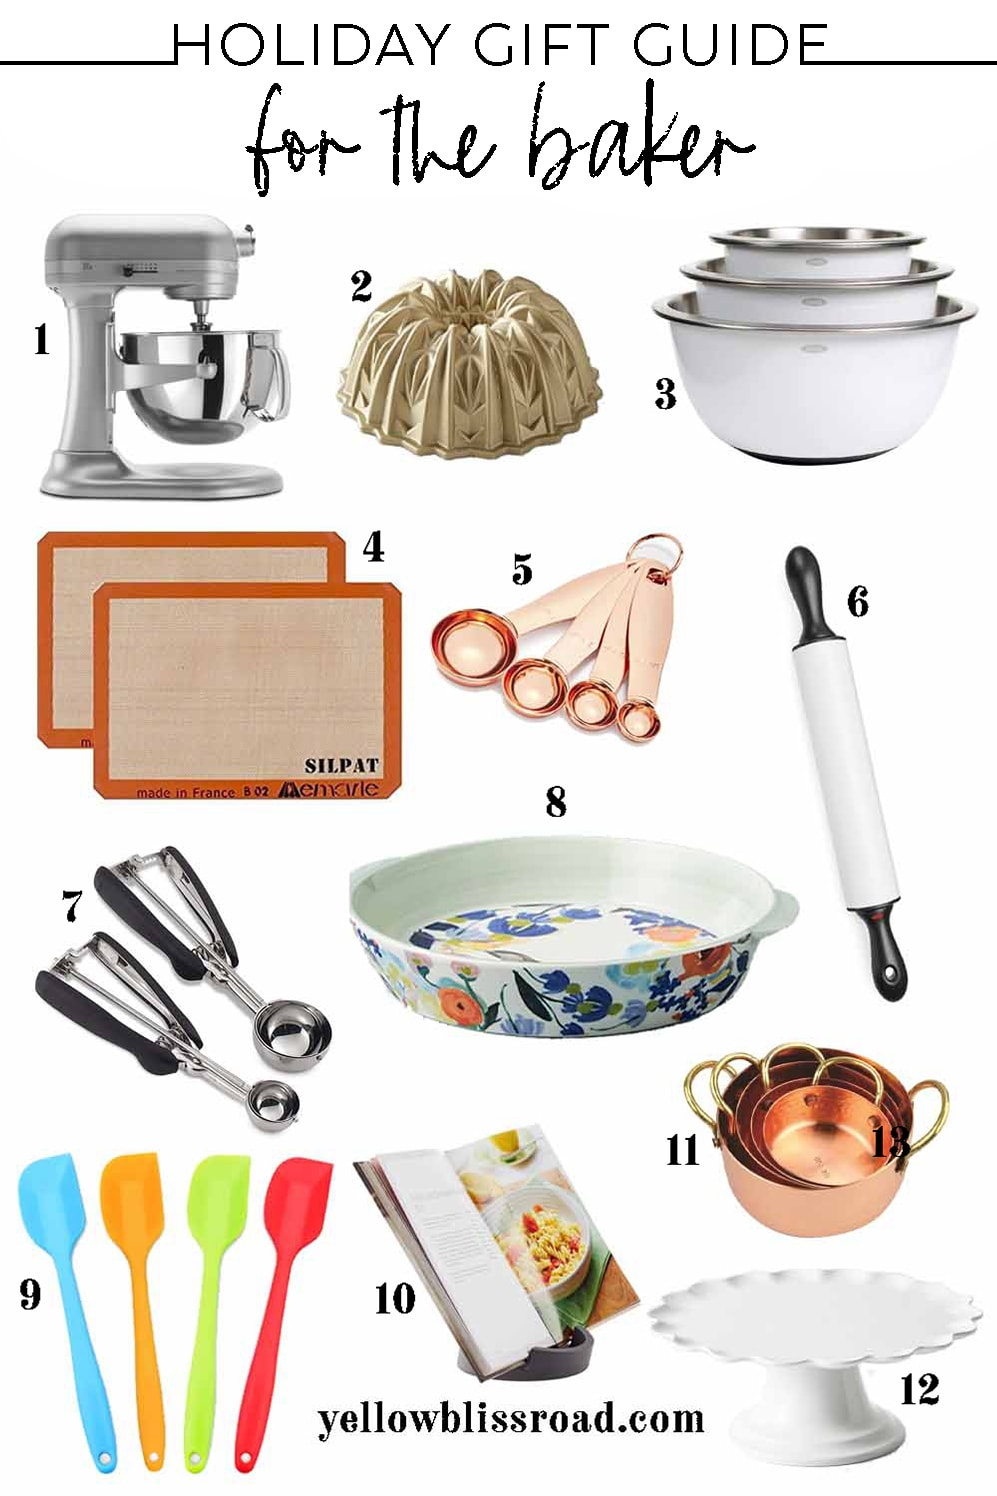 collage of images of gift ideas for people who bake